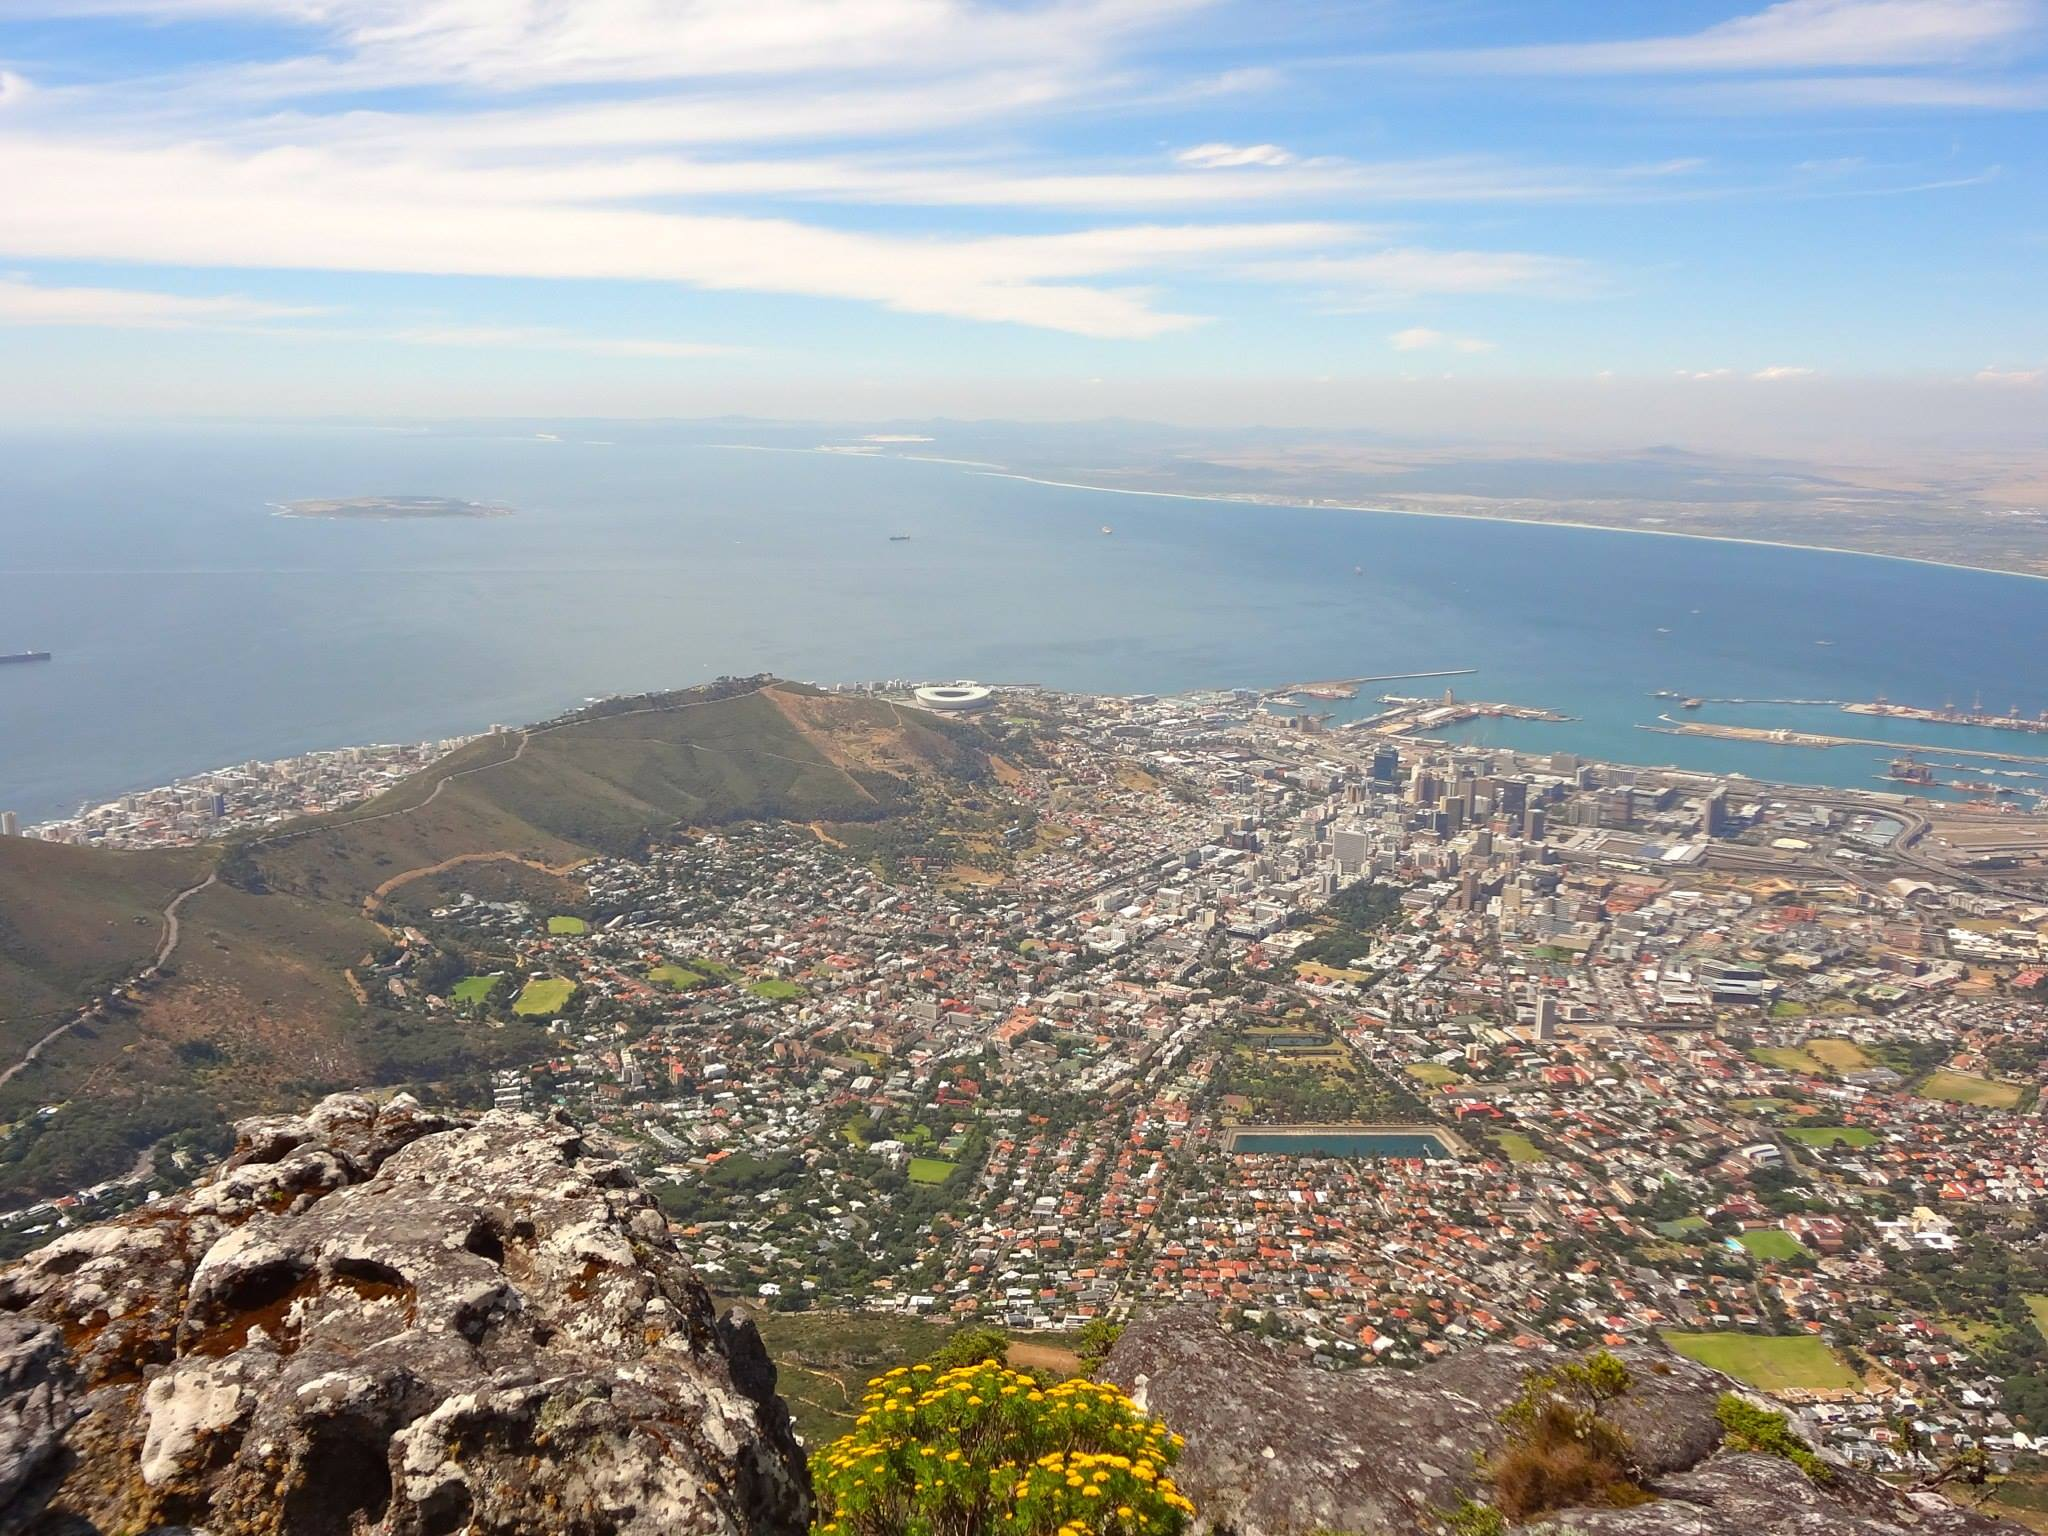 View from the top of the Table Mountain